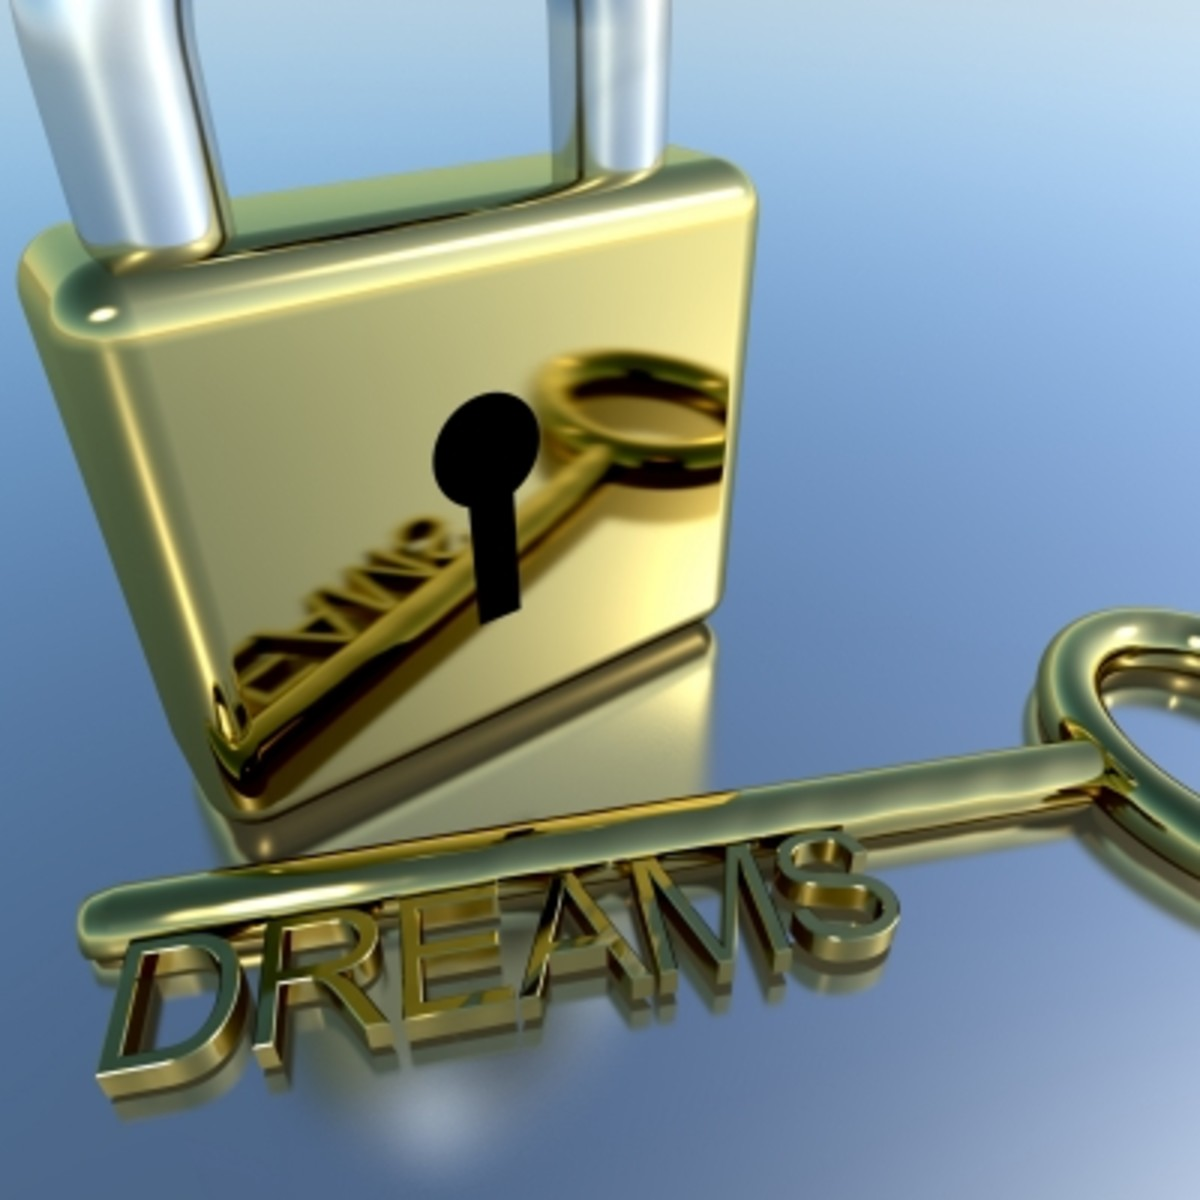 A lump sum of money can be your opportunity to make your dreams come true.